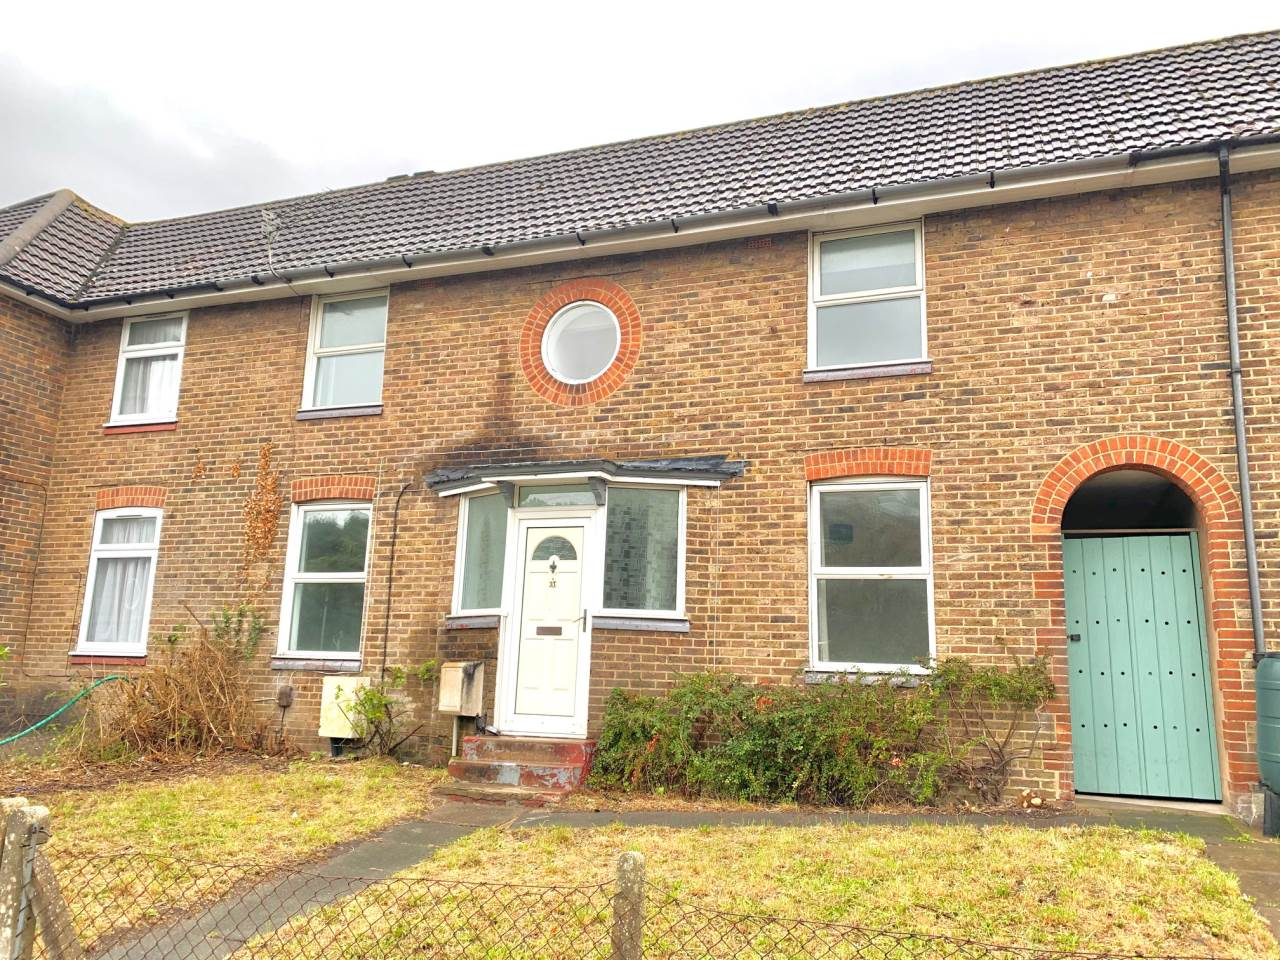 4 bed house to rent in 31 The Highway BN2 4GB, BN2